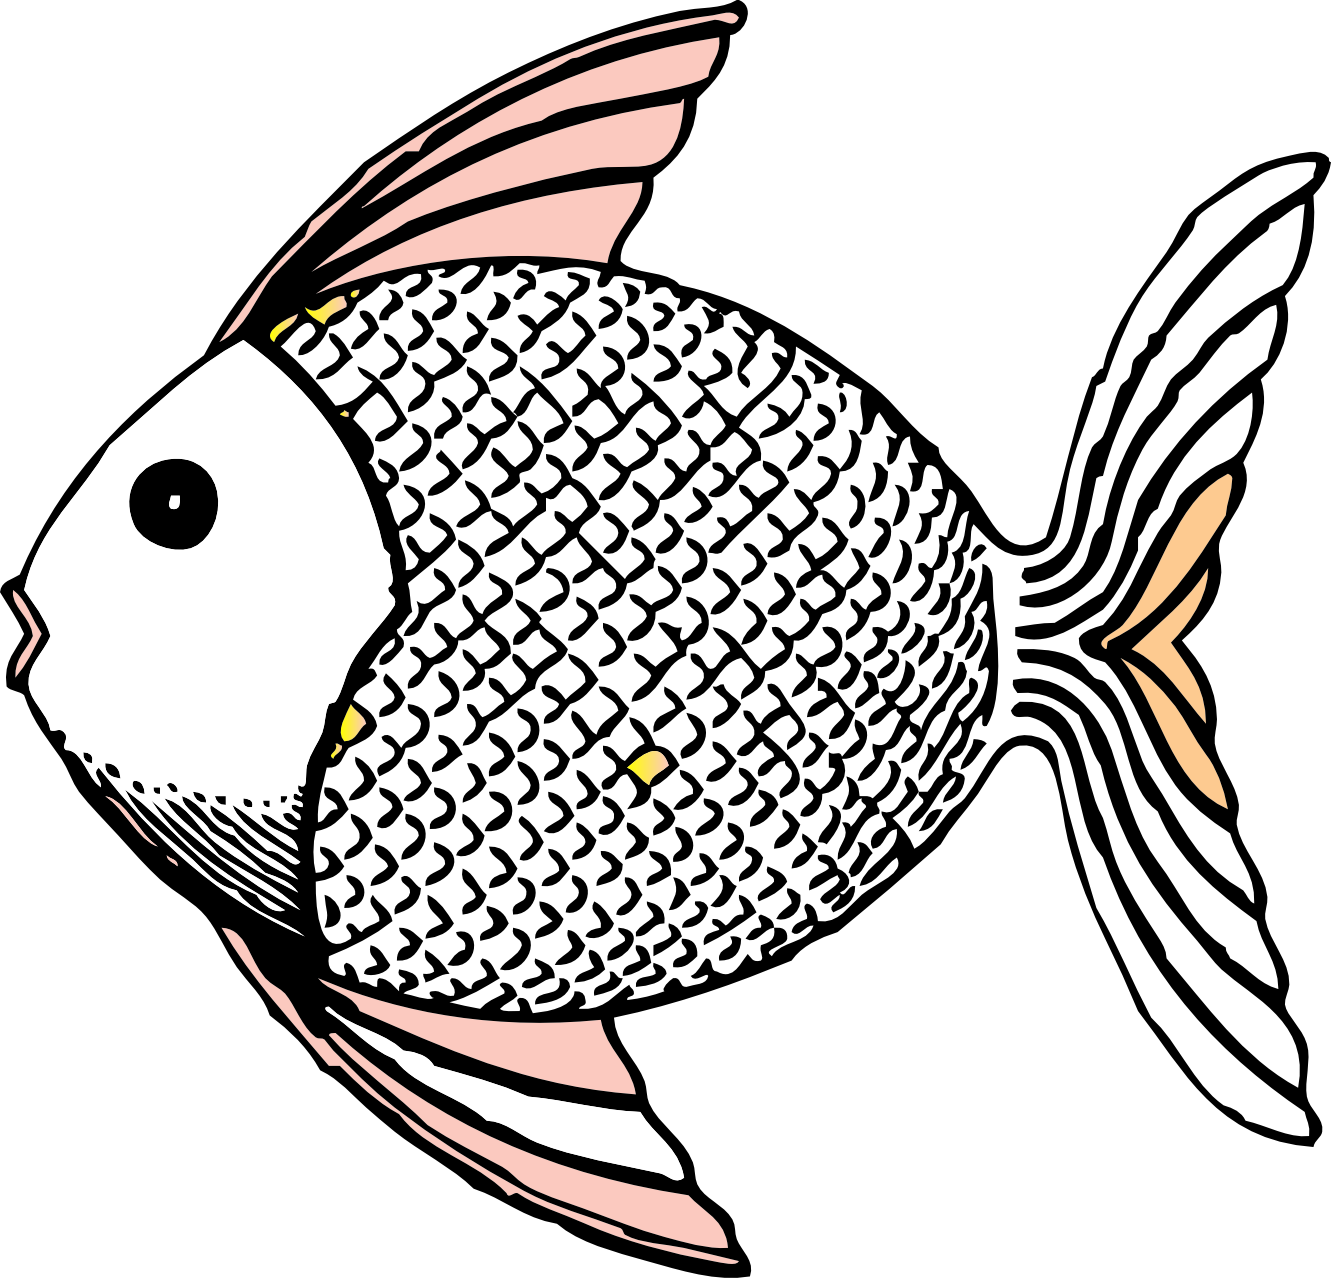 Drawn island black and white Clipart Art Fish Clip Panda